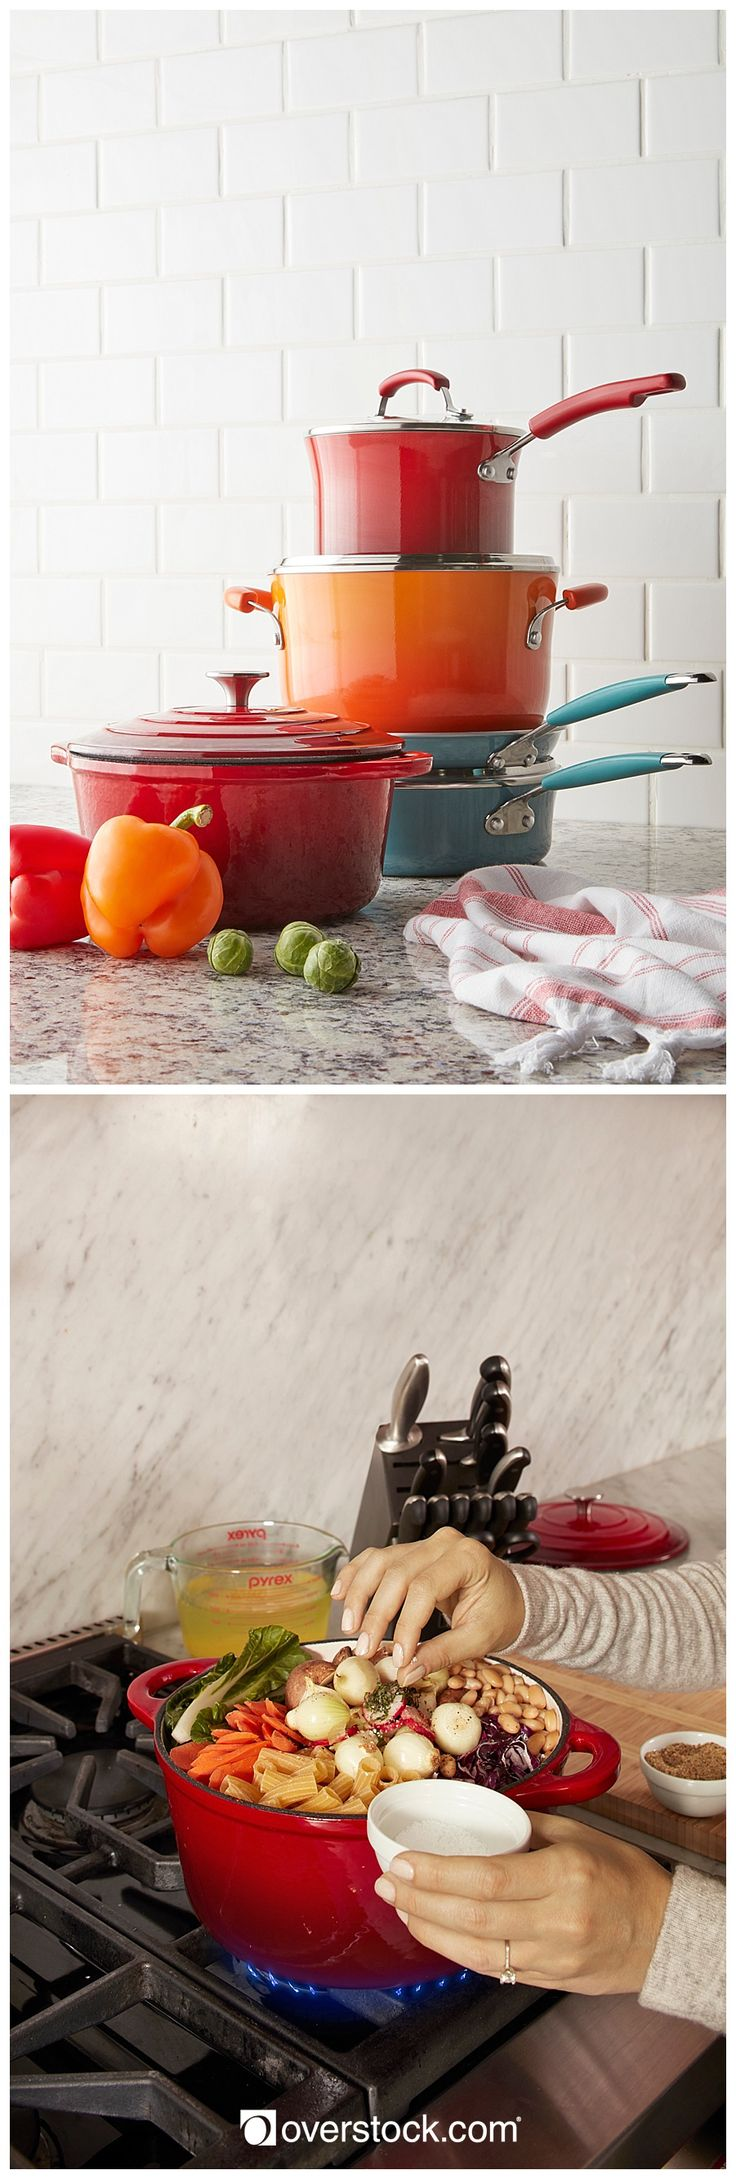 Overstock Kitchen Appliances 17 Best Images About Kitchen On Pinterest Toaster Specialty